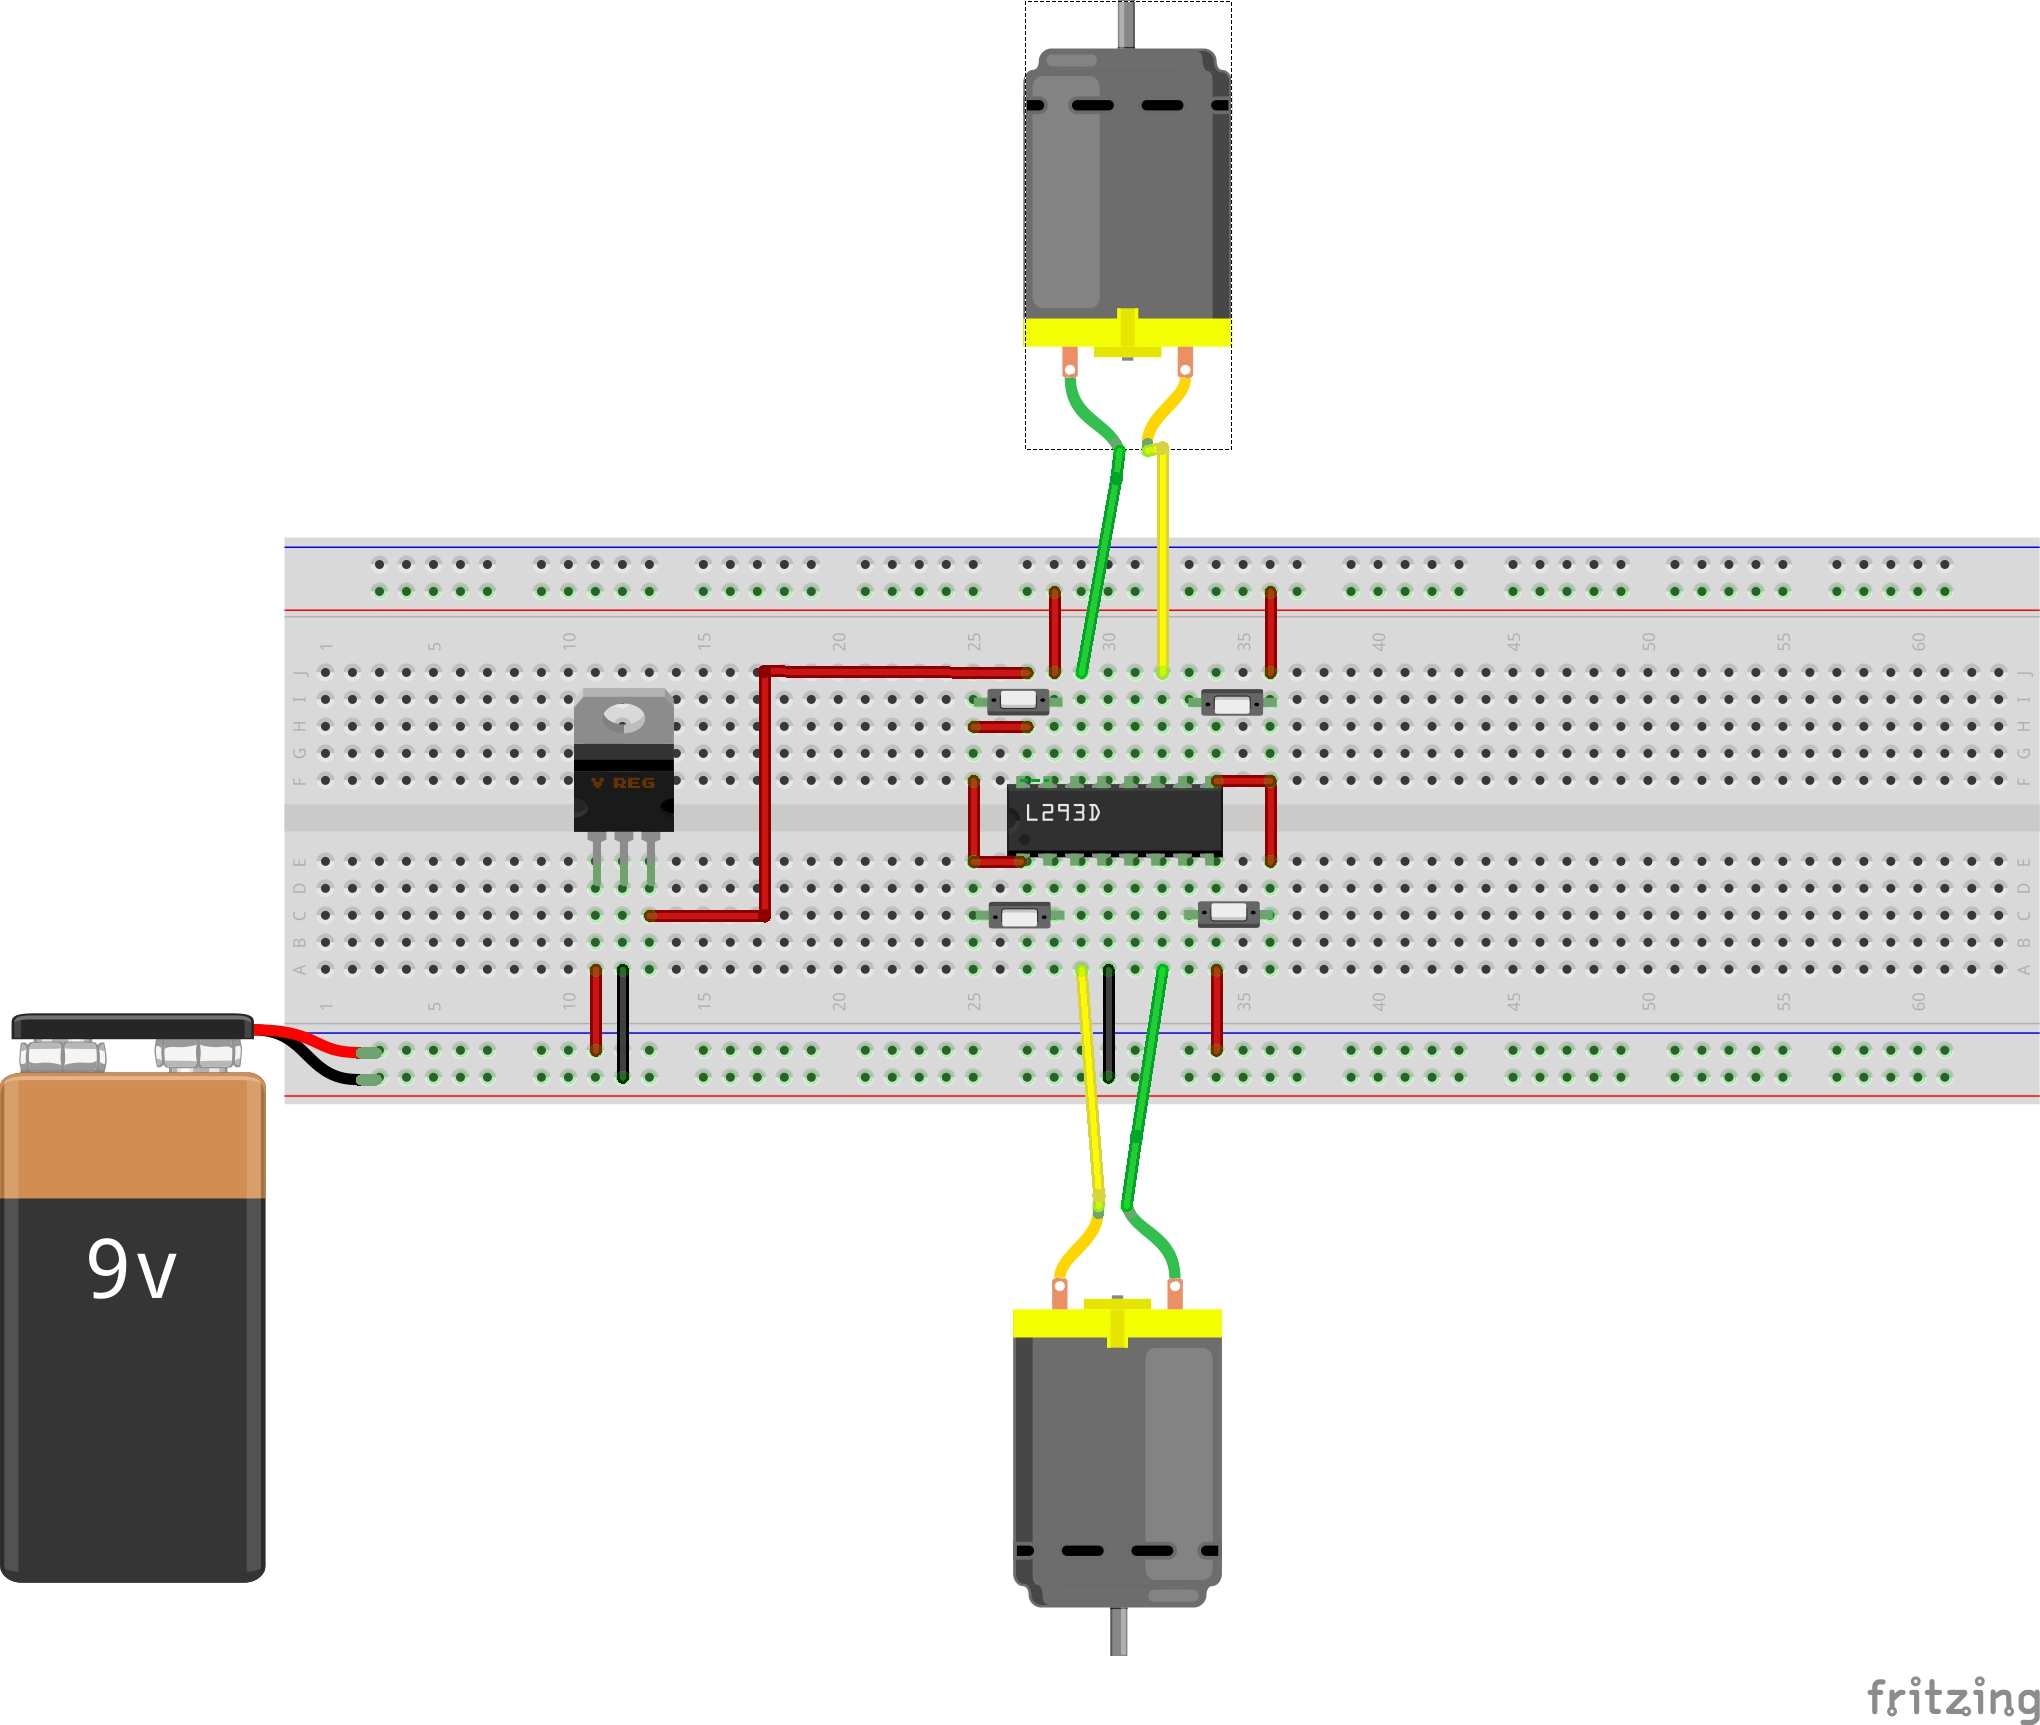 Learn Make Your Own Cheap L293d Motor Drivera Complete Guide For Battery Tester Circuit Breadboard Schematic Now Connect Everything As Shown In Diagram